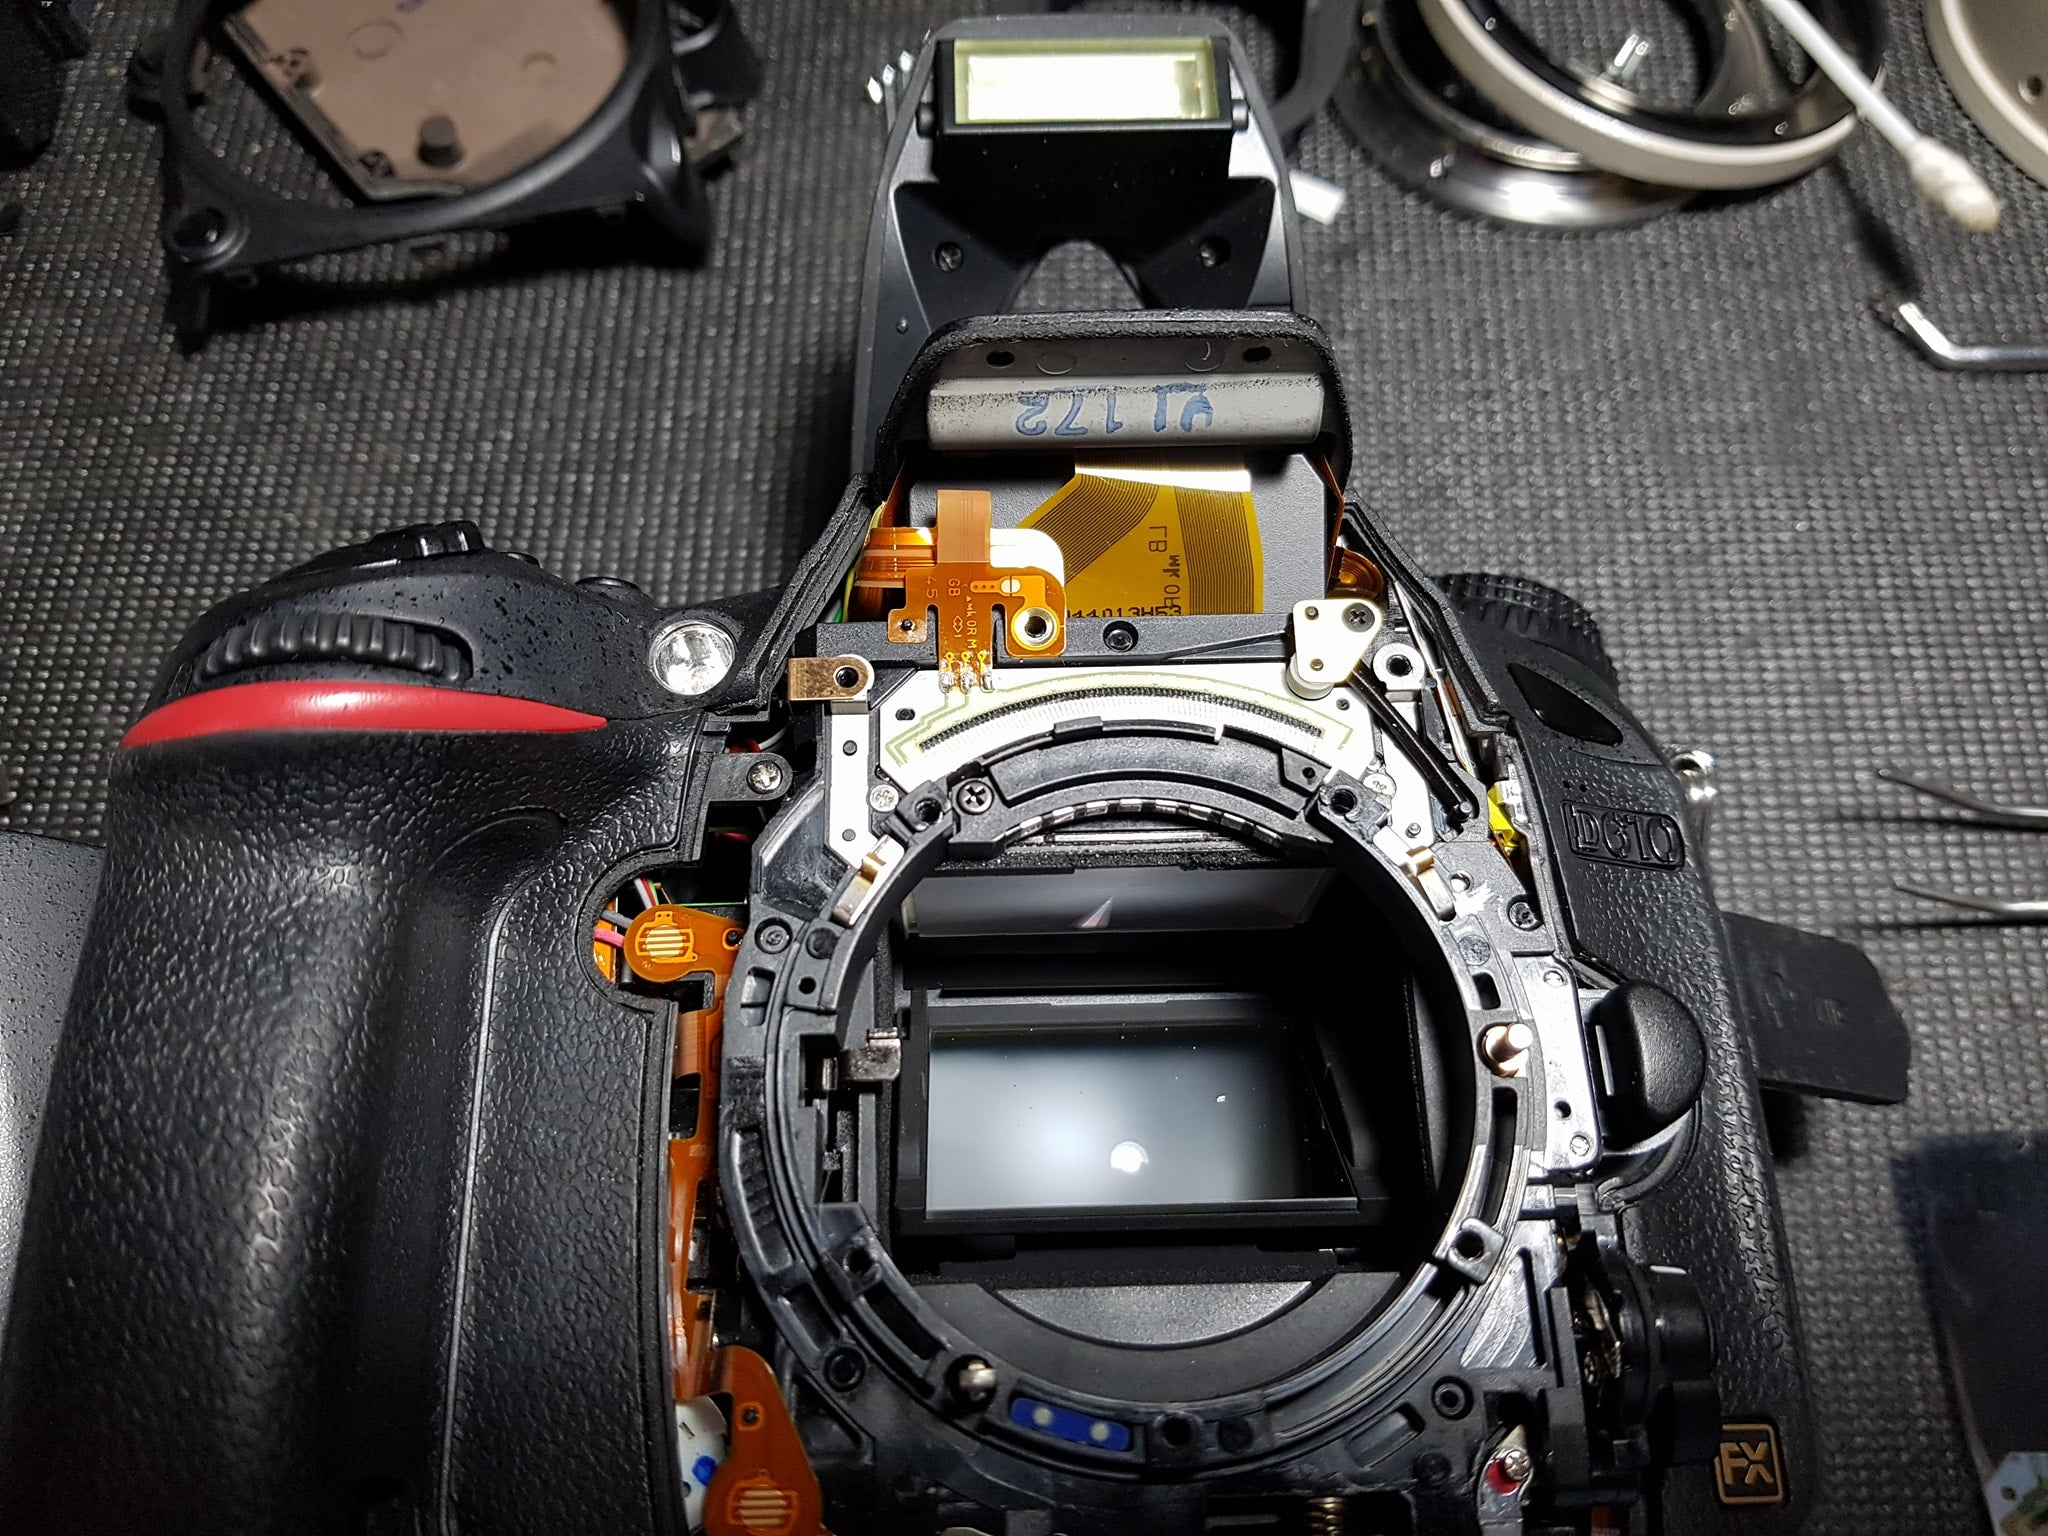 Pro Camera Body Full Service Cleaning